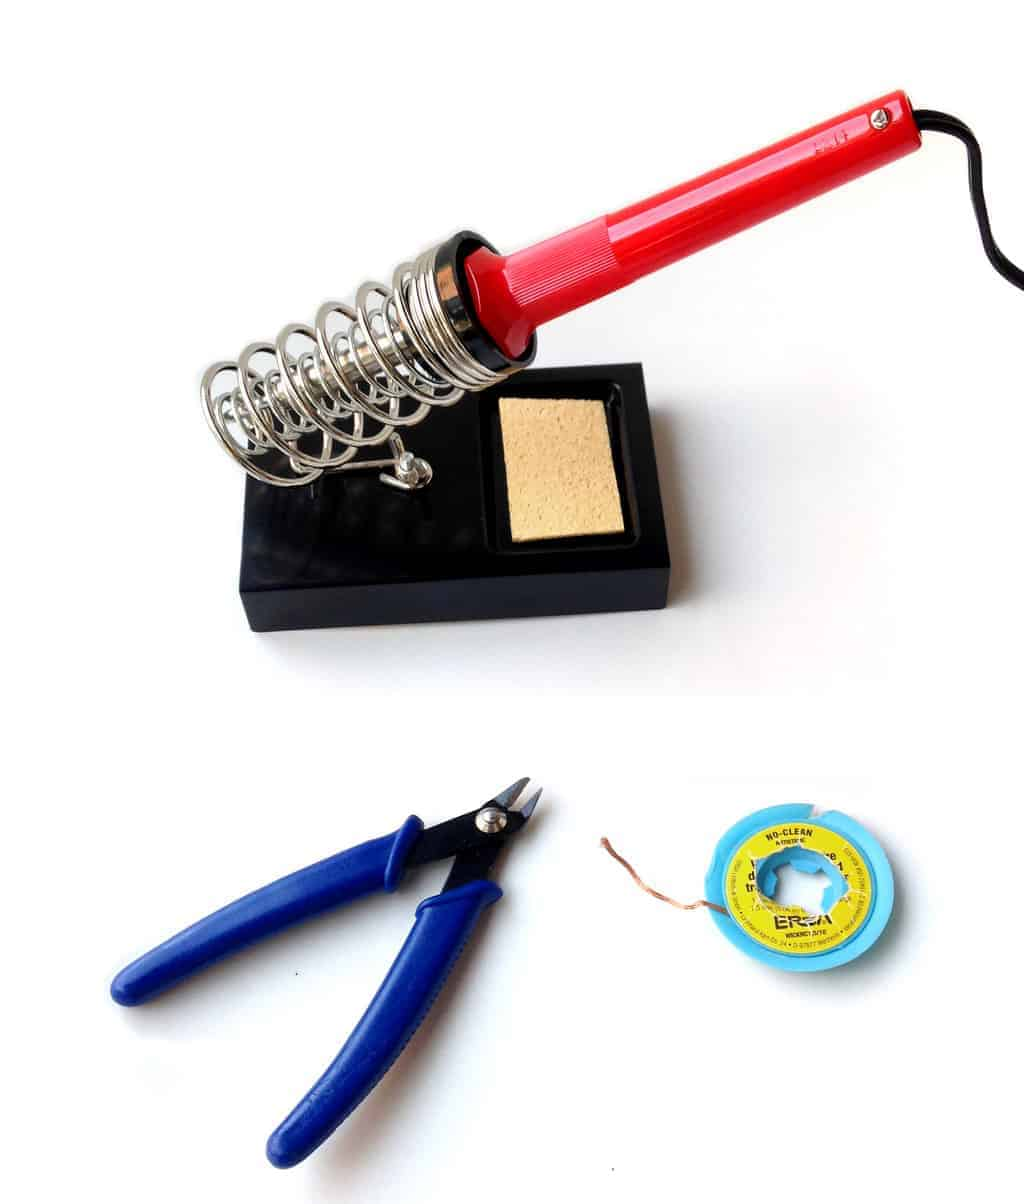 the soldering tools that make your life easier build electronicthe soldering tools that make your life easier build electronic circuits